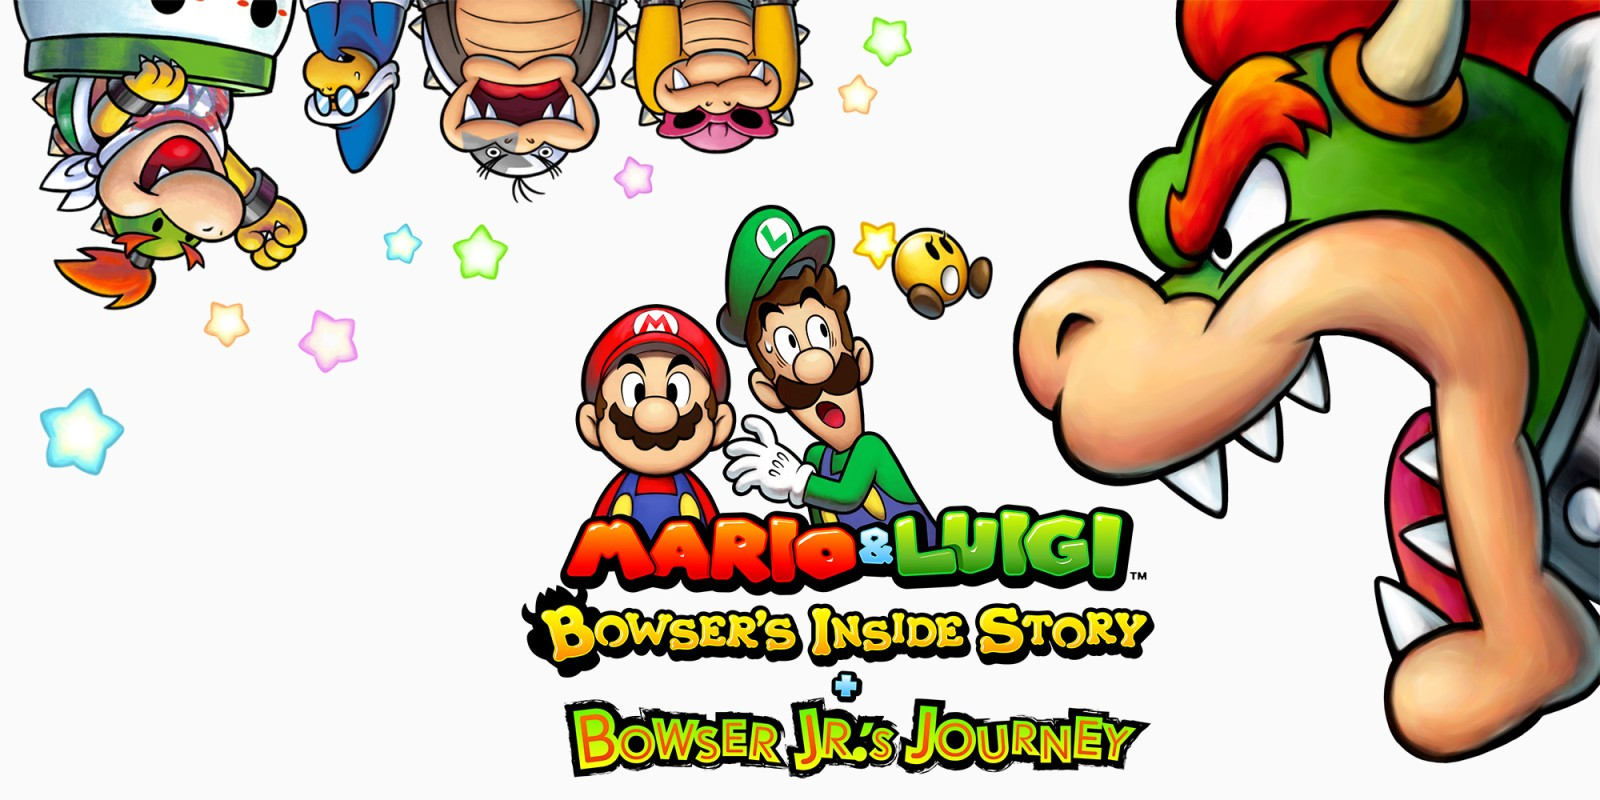 Review Mario Luigi Bowser S Inside Story Bowser Jr S